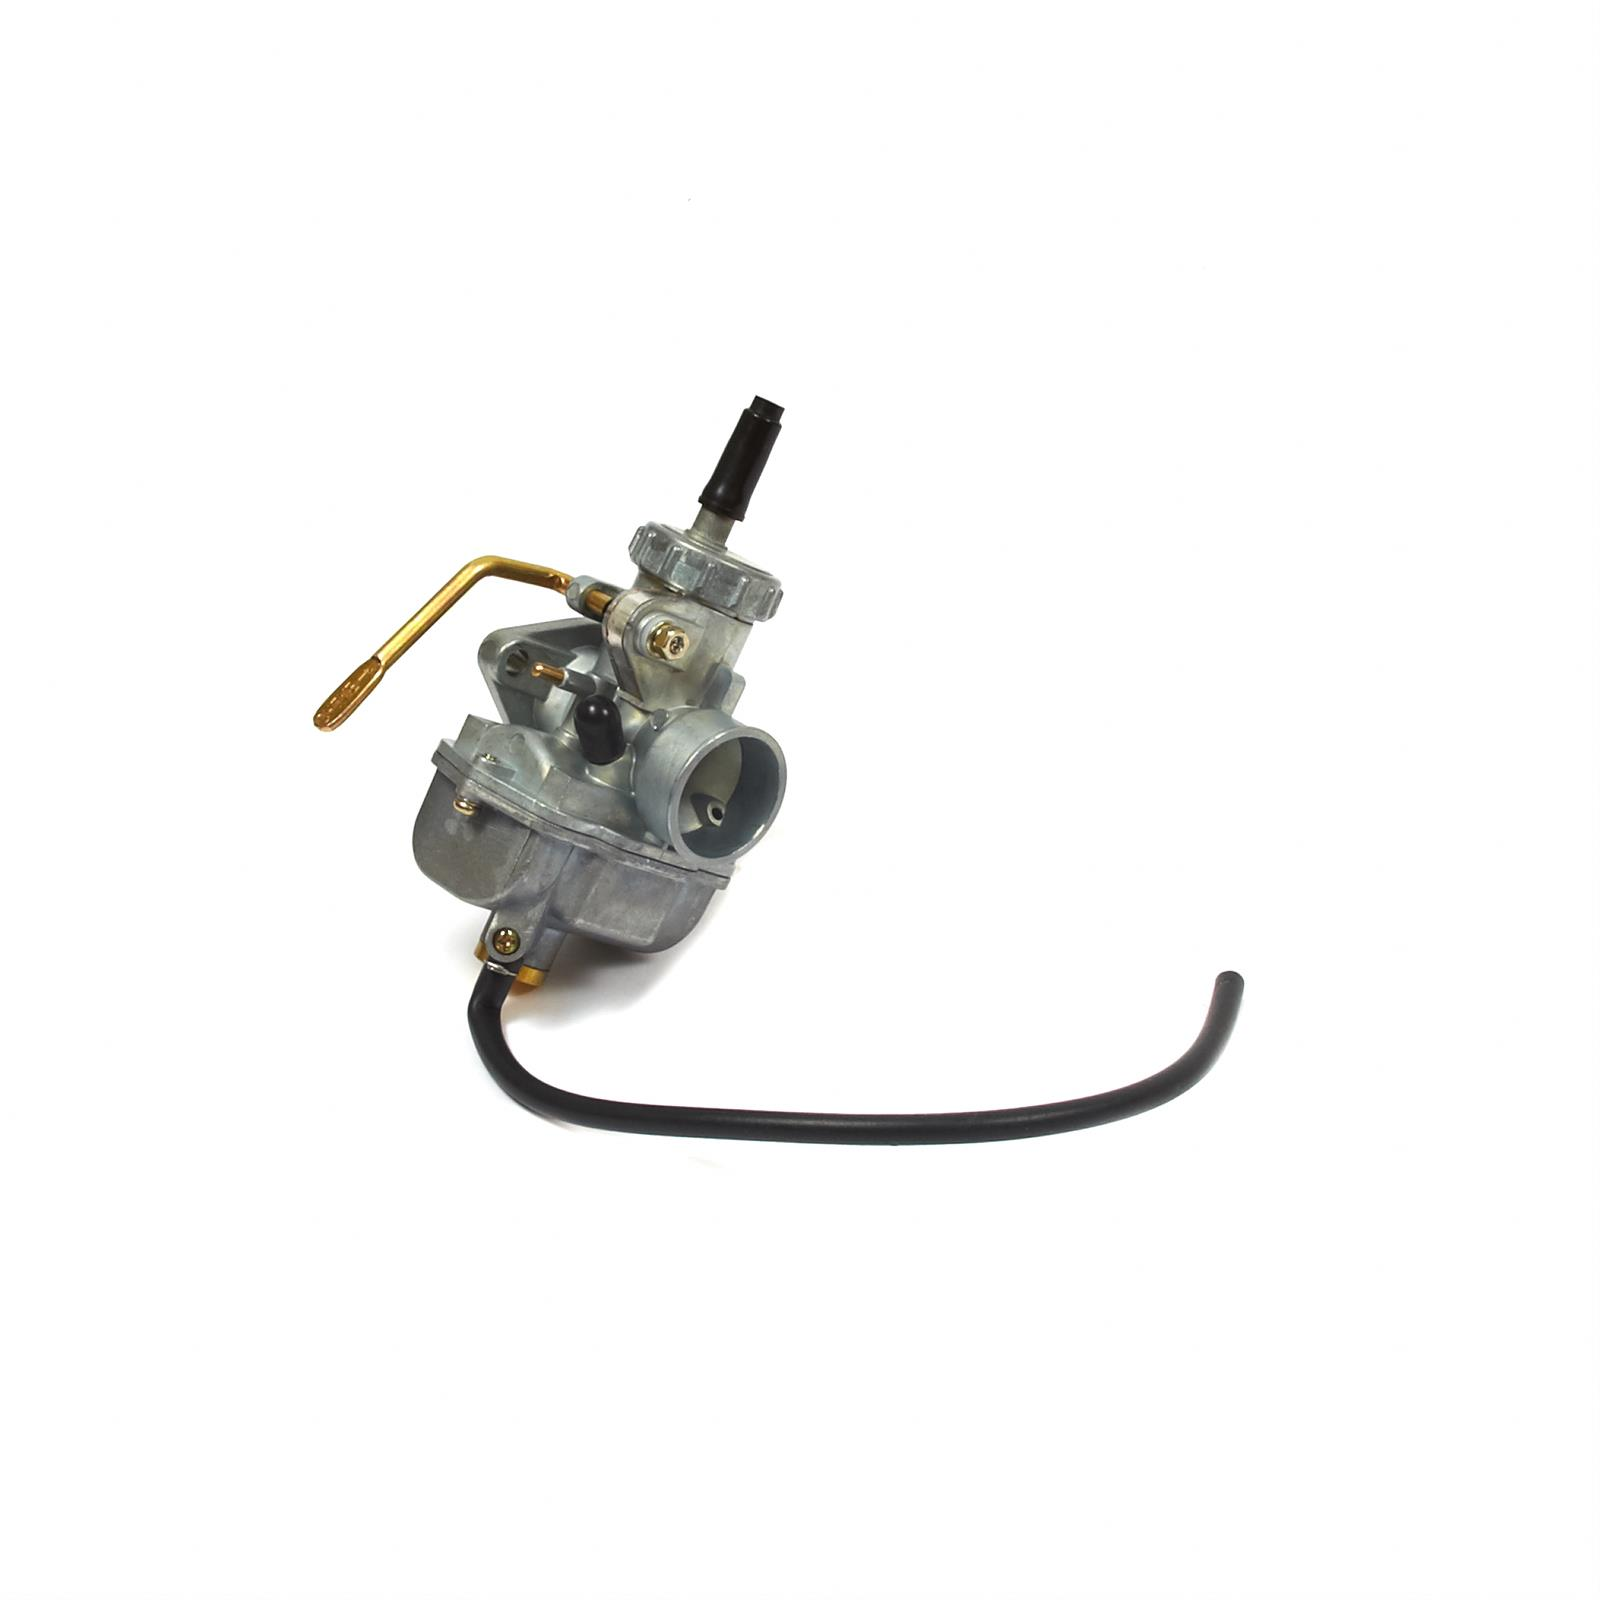 Walbro Pz22 Carburetor Parts – Quotes of the Day